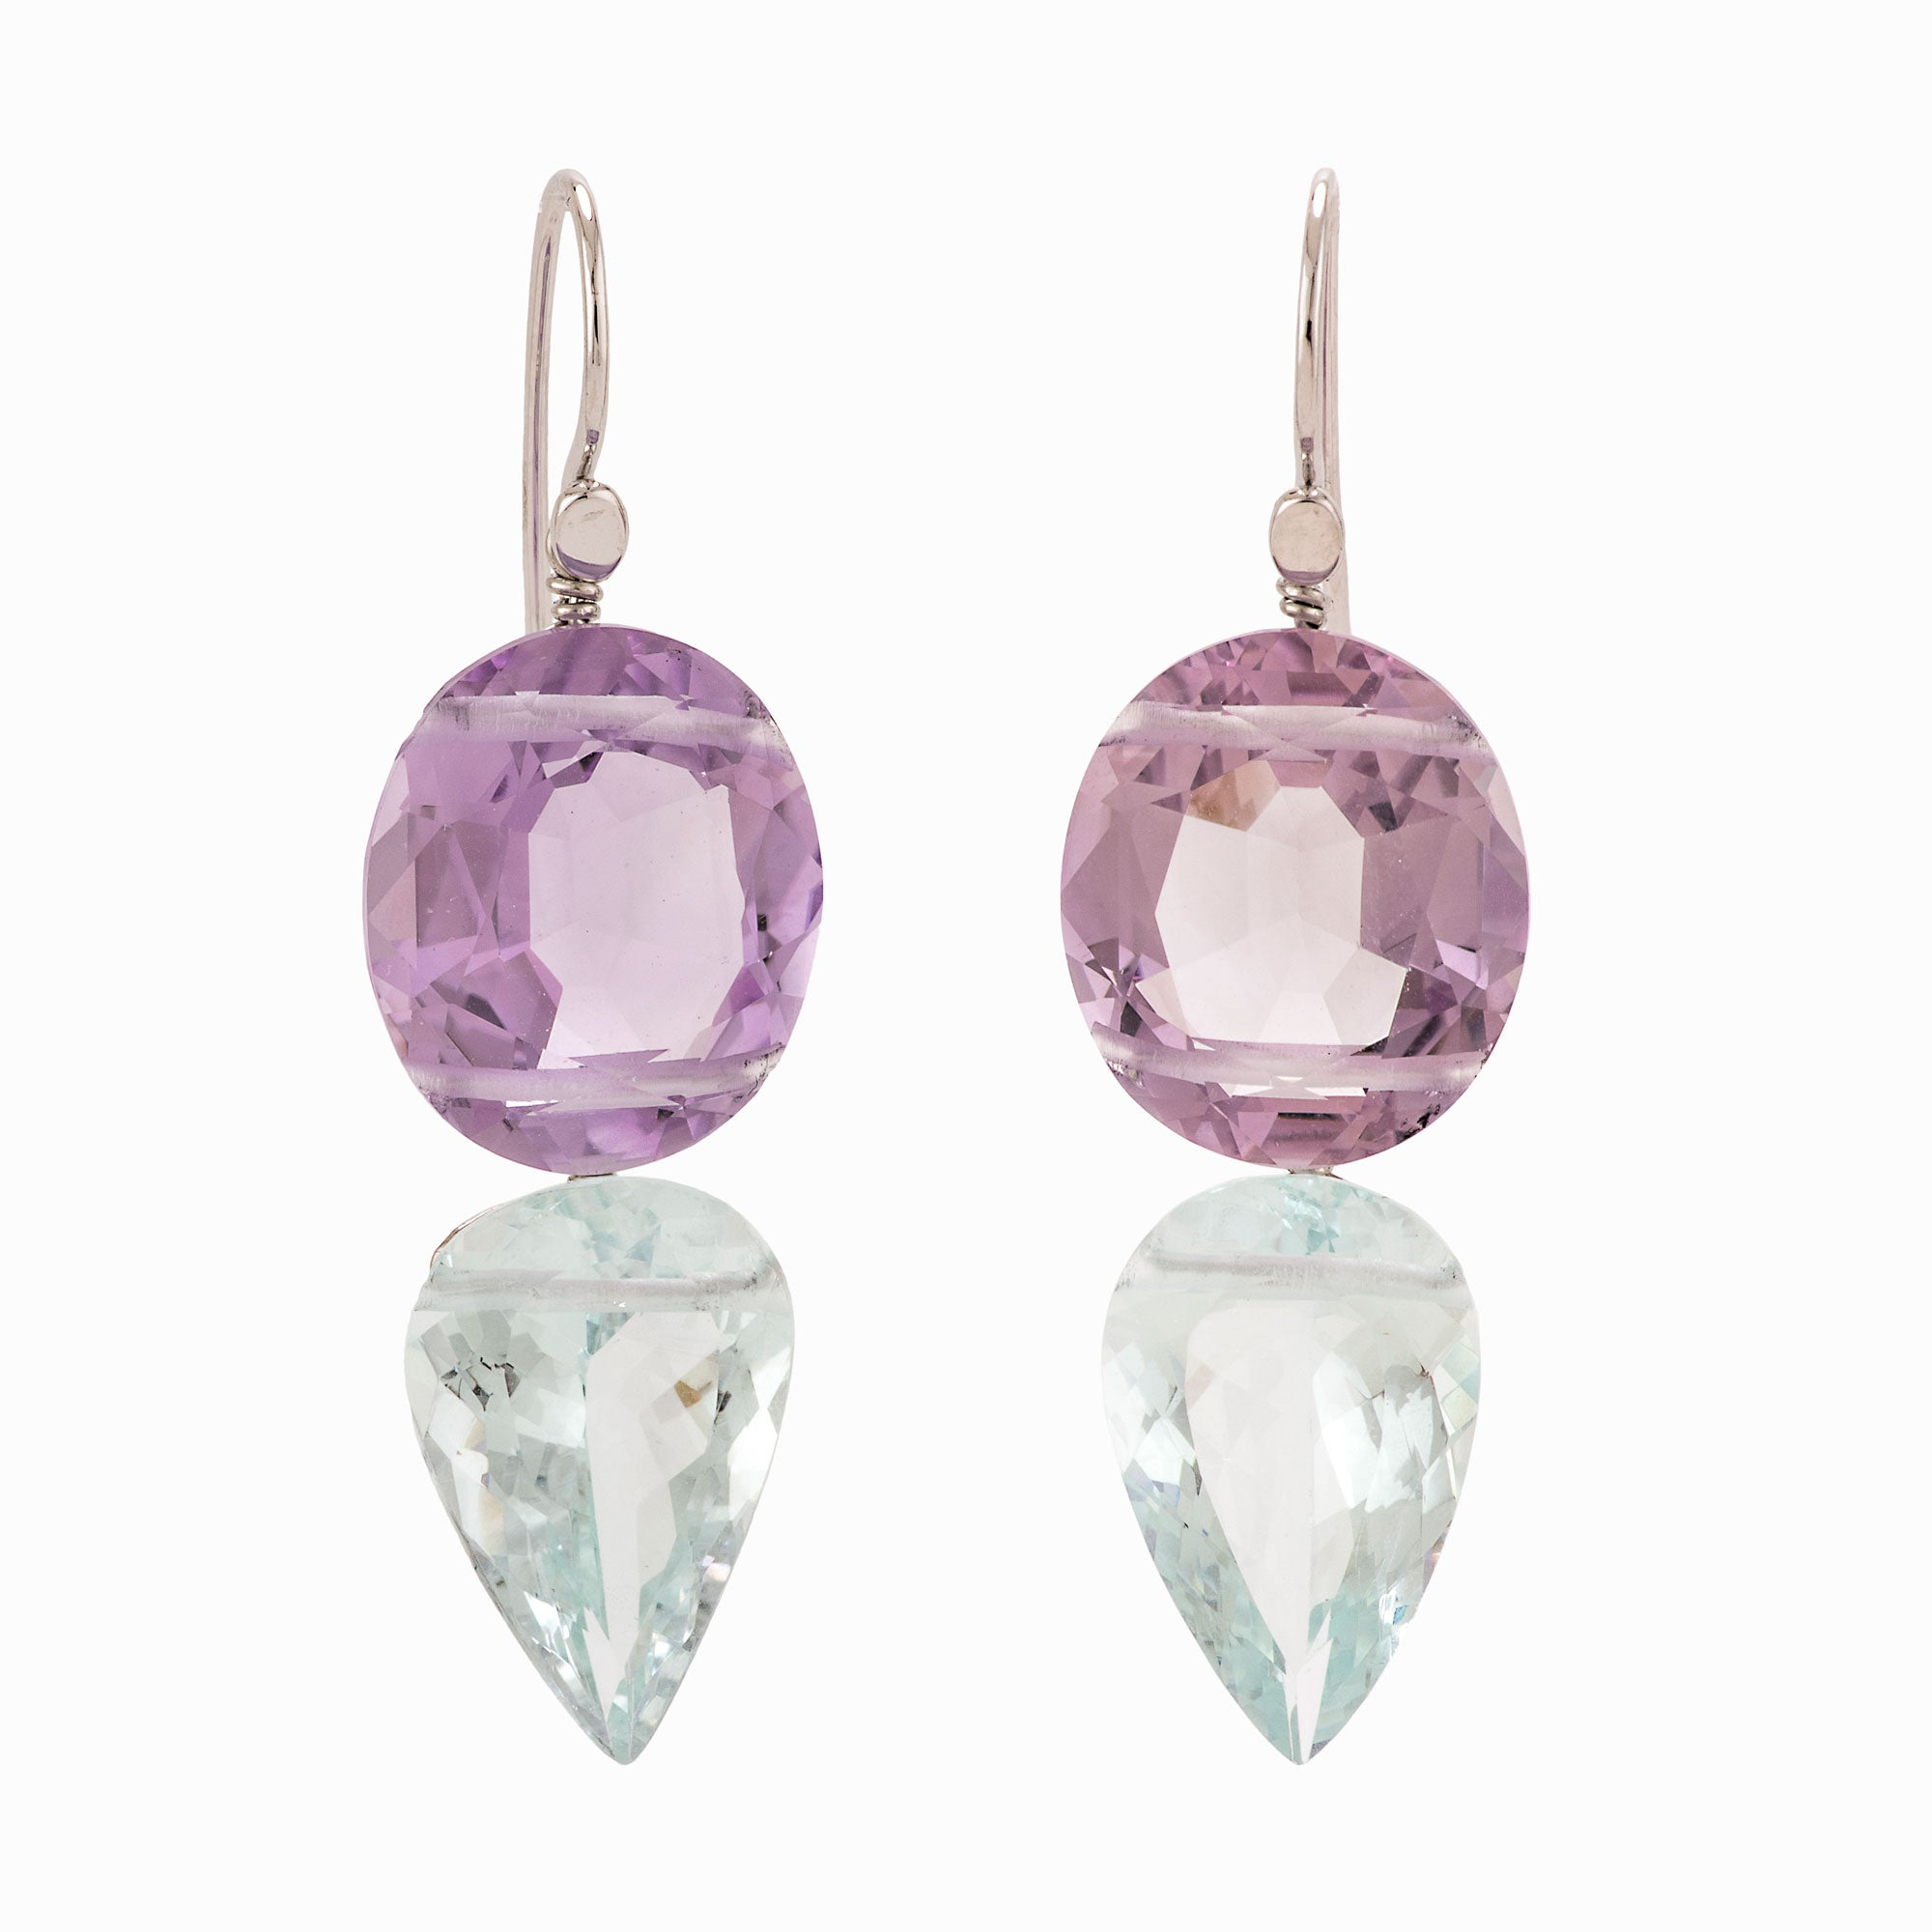 Regal II aquamarine earrings